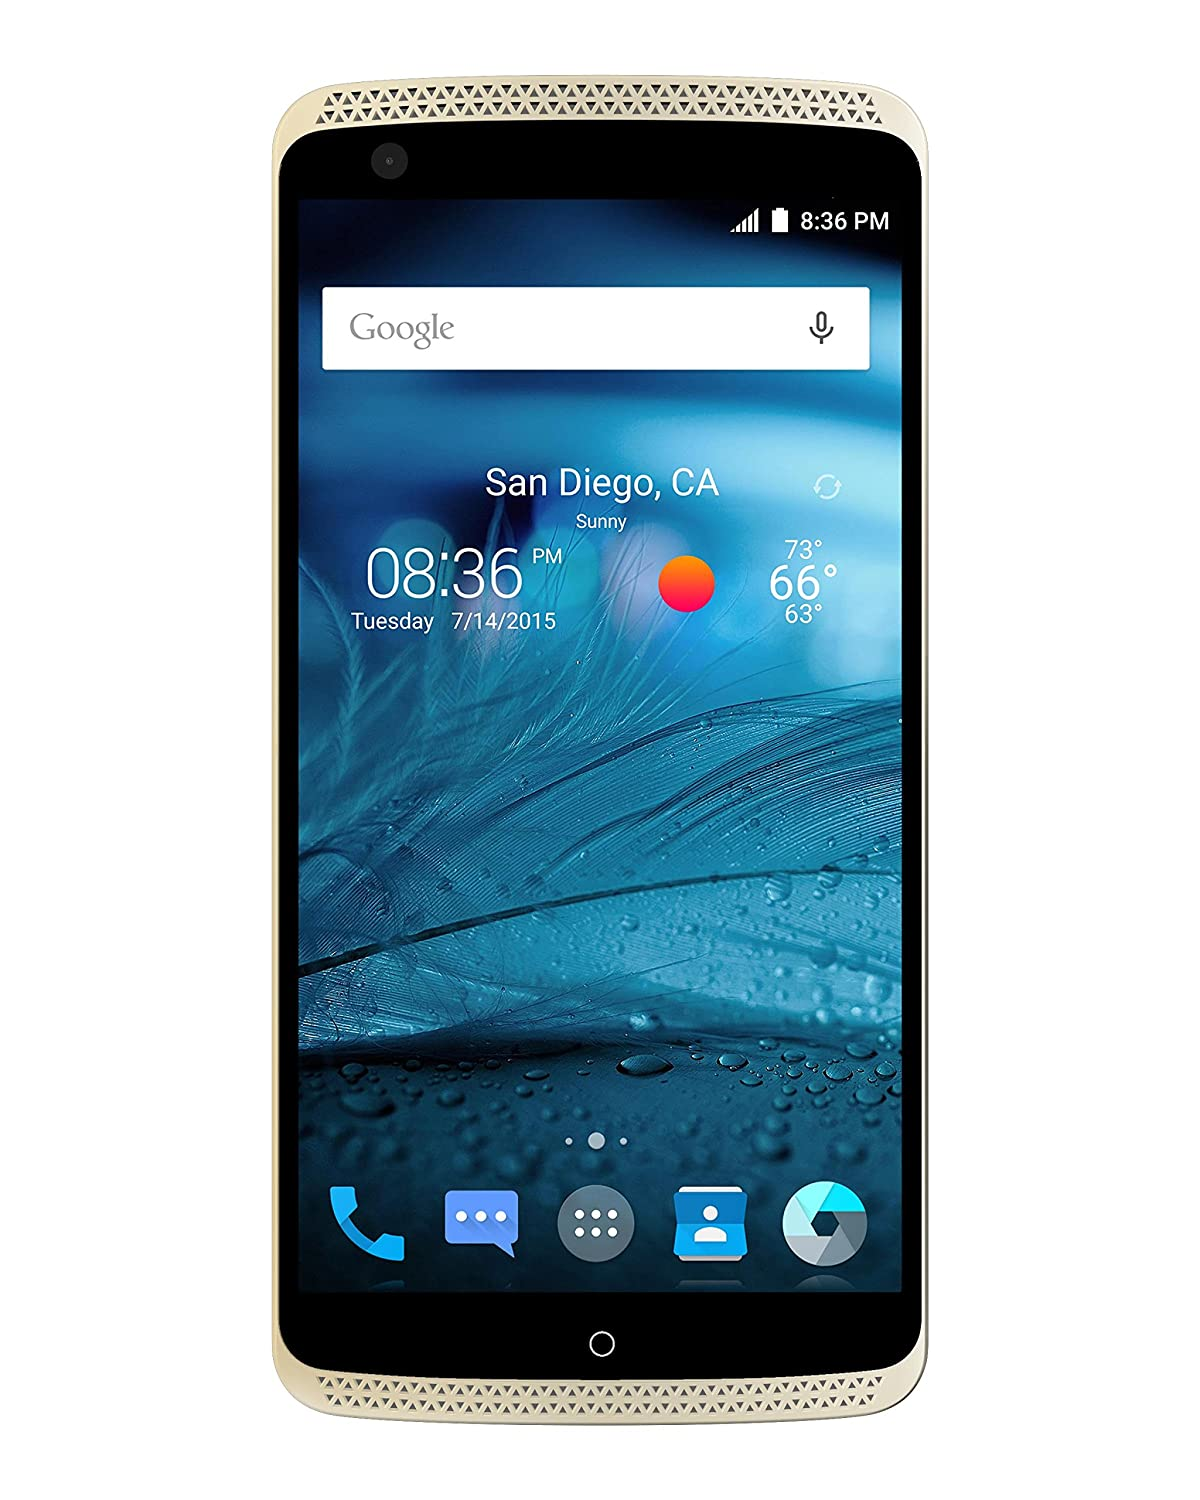 moreState Play zte axon pro uk smartphone was